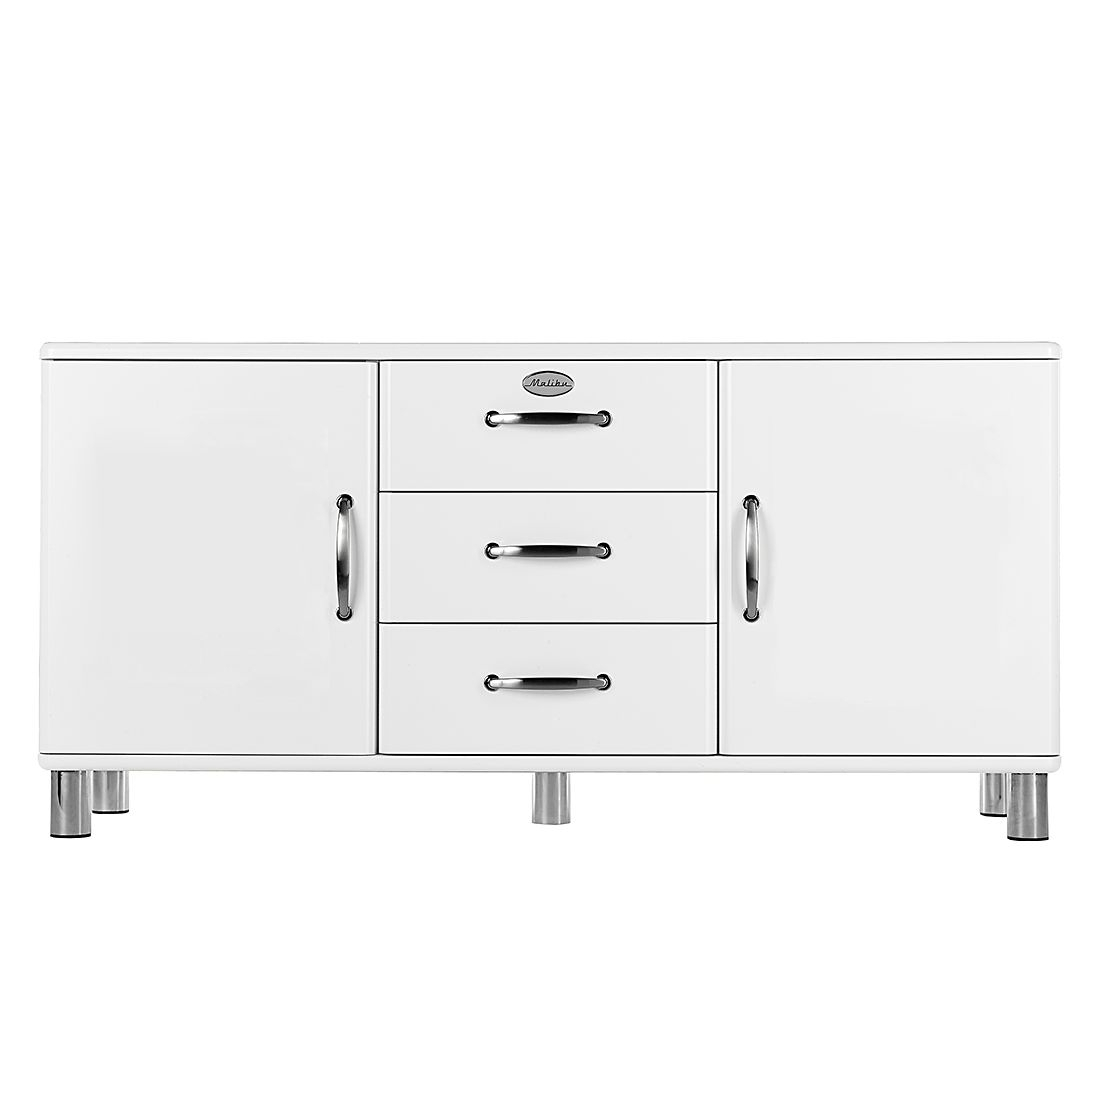 Sideboard Malibu Ii | Products | Wohnzimmer, Möbel Und Pertaining To 2018 Malibu 2 Door 1 Drawer Sideboards (View 10 of 20)